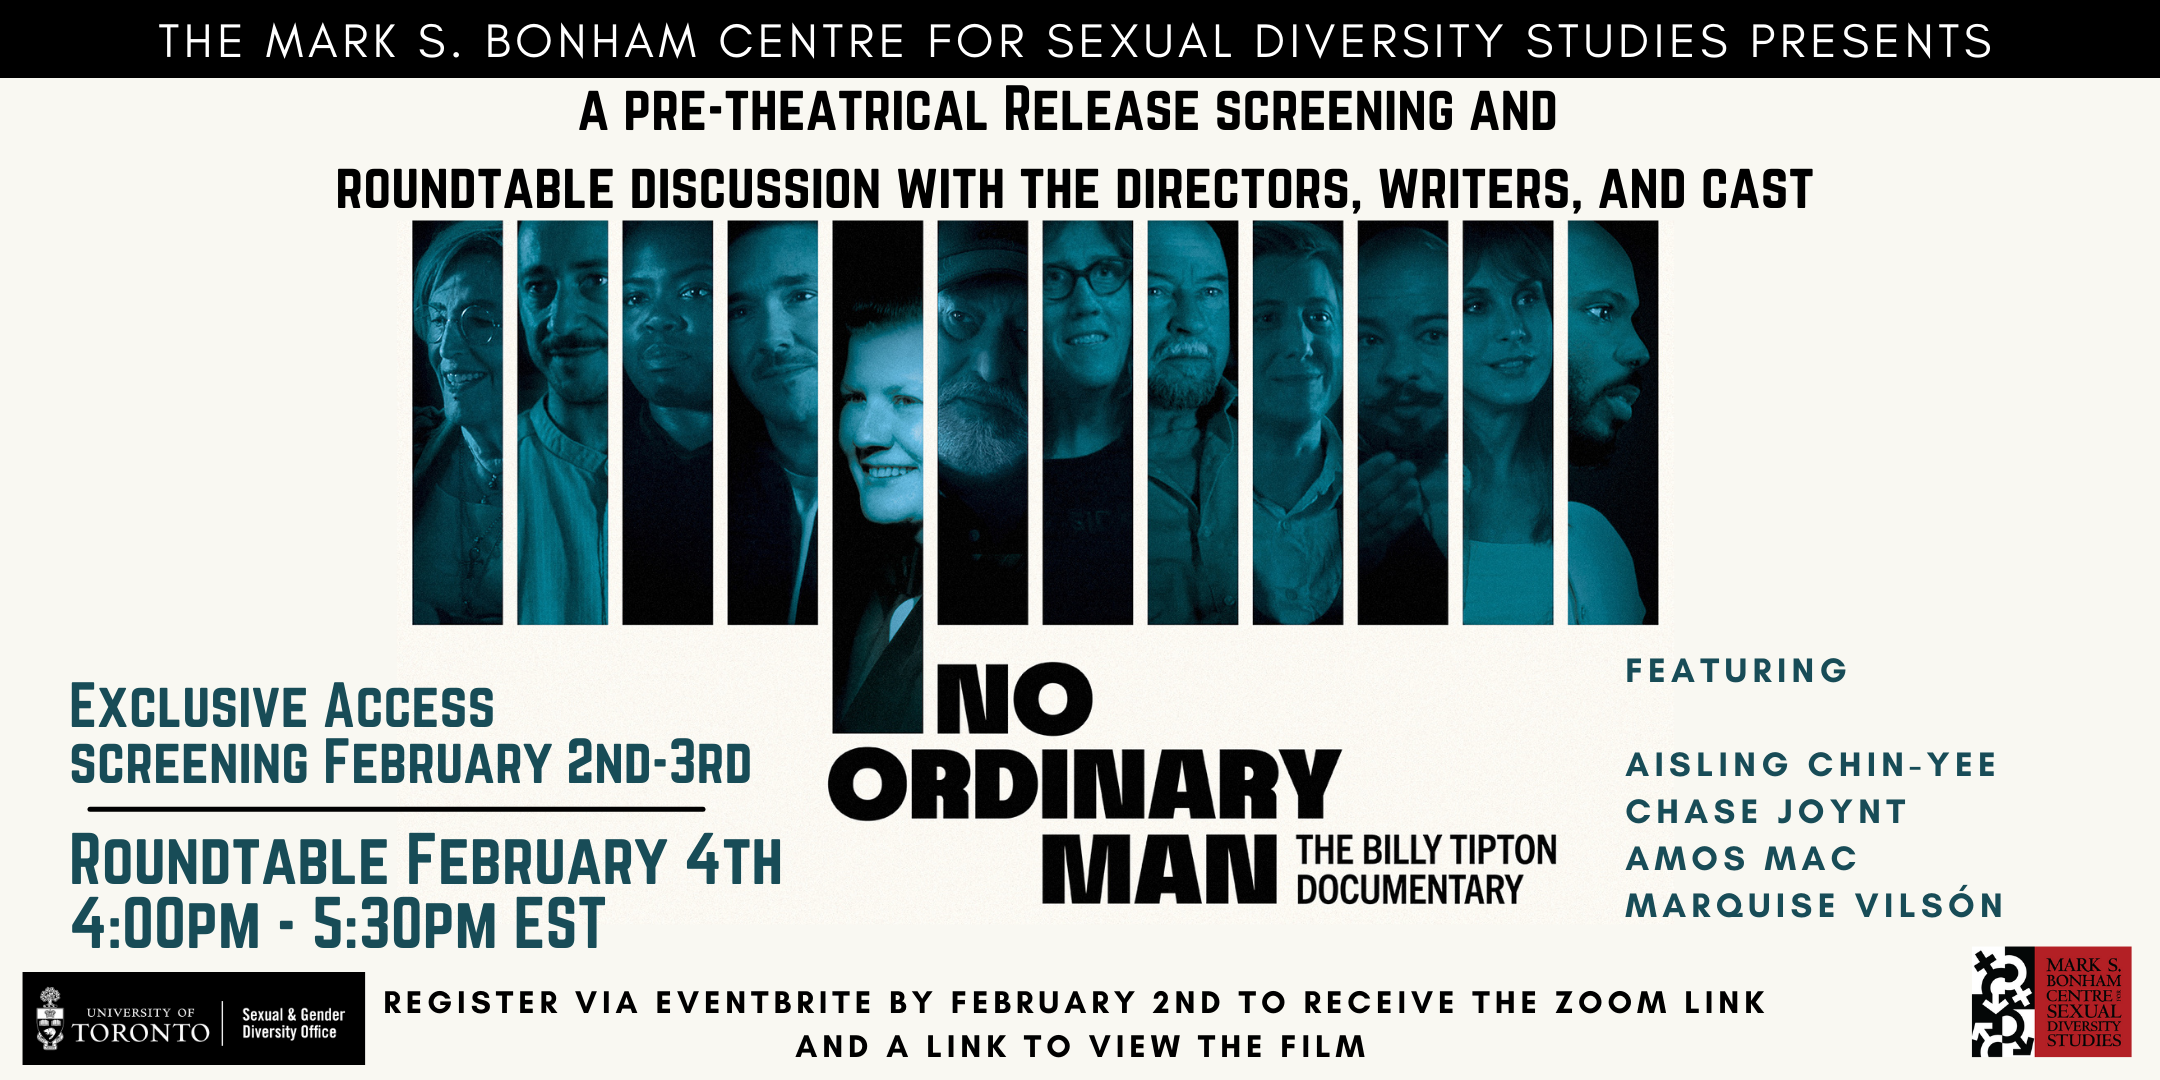 No Ordinary Man: The Billy Tipton Documentary Screening and Roundtable Discussion with Directors, Writers, and Cast